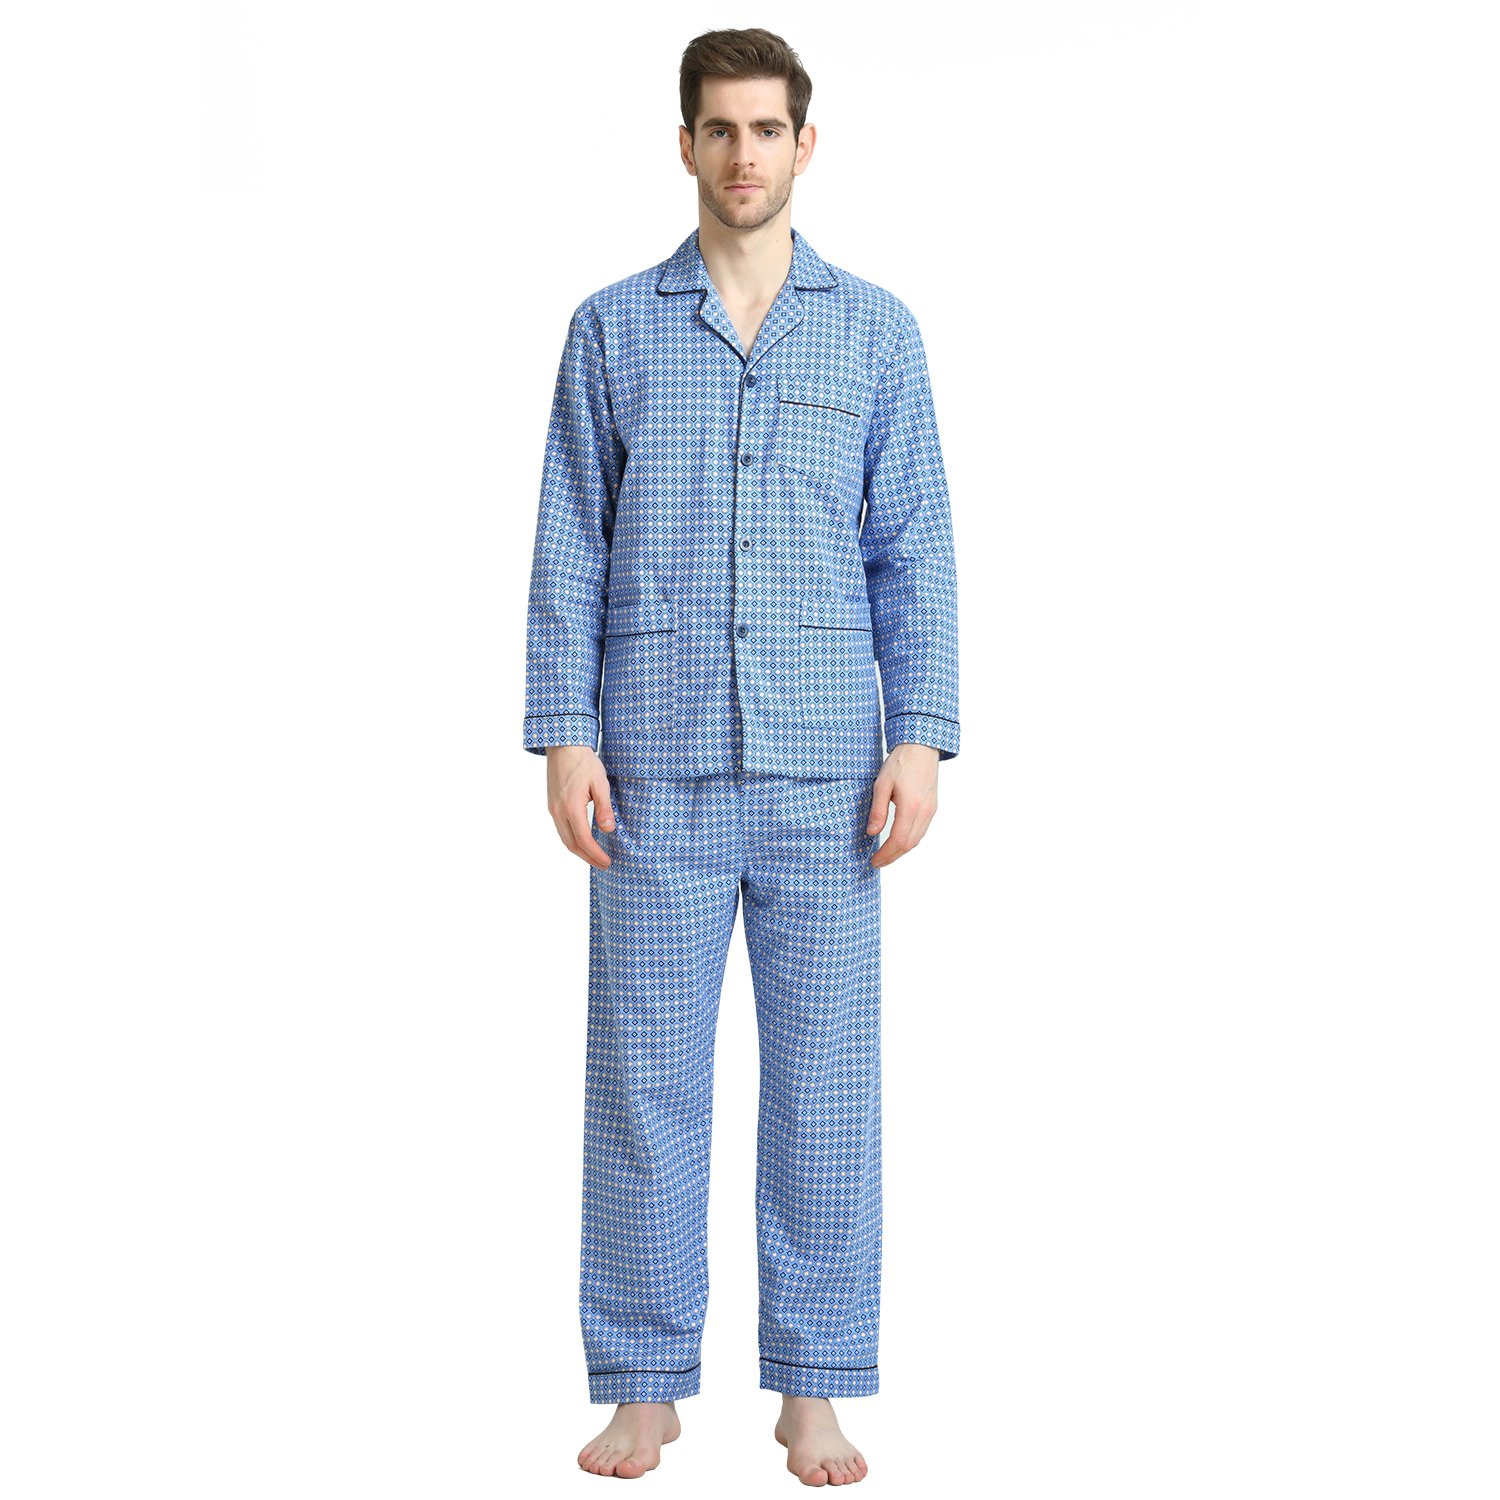 Cotton Sleepwear/Loungewear Sets for Men,100% Fleece Warm Pj Top and Bottom by GLOBAL (Image #1)